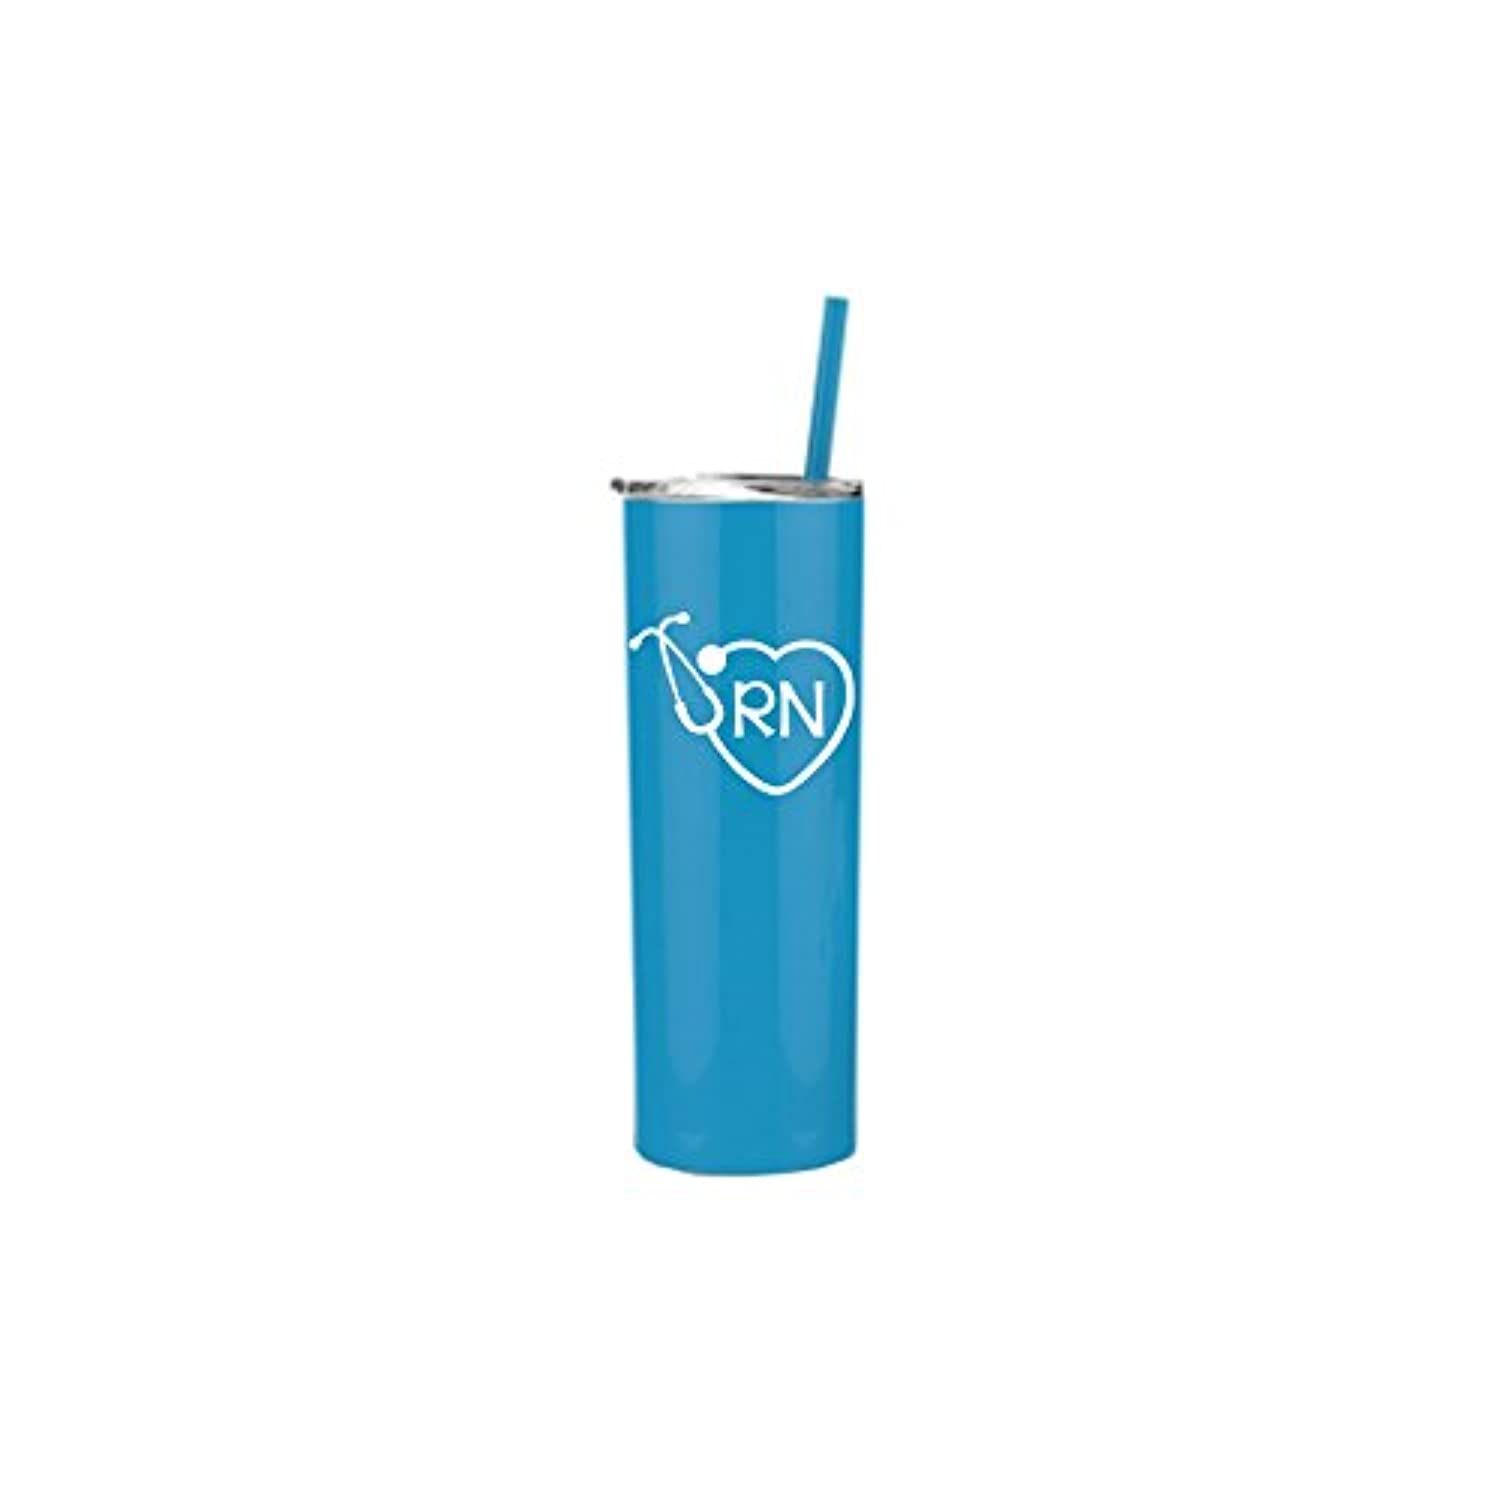 RN Tumbler Cup with Lid and Straw |看護師ギフト ブルー